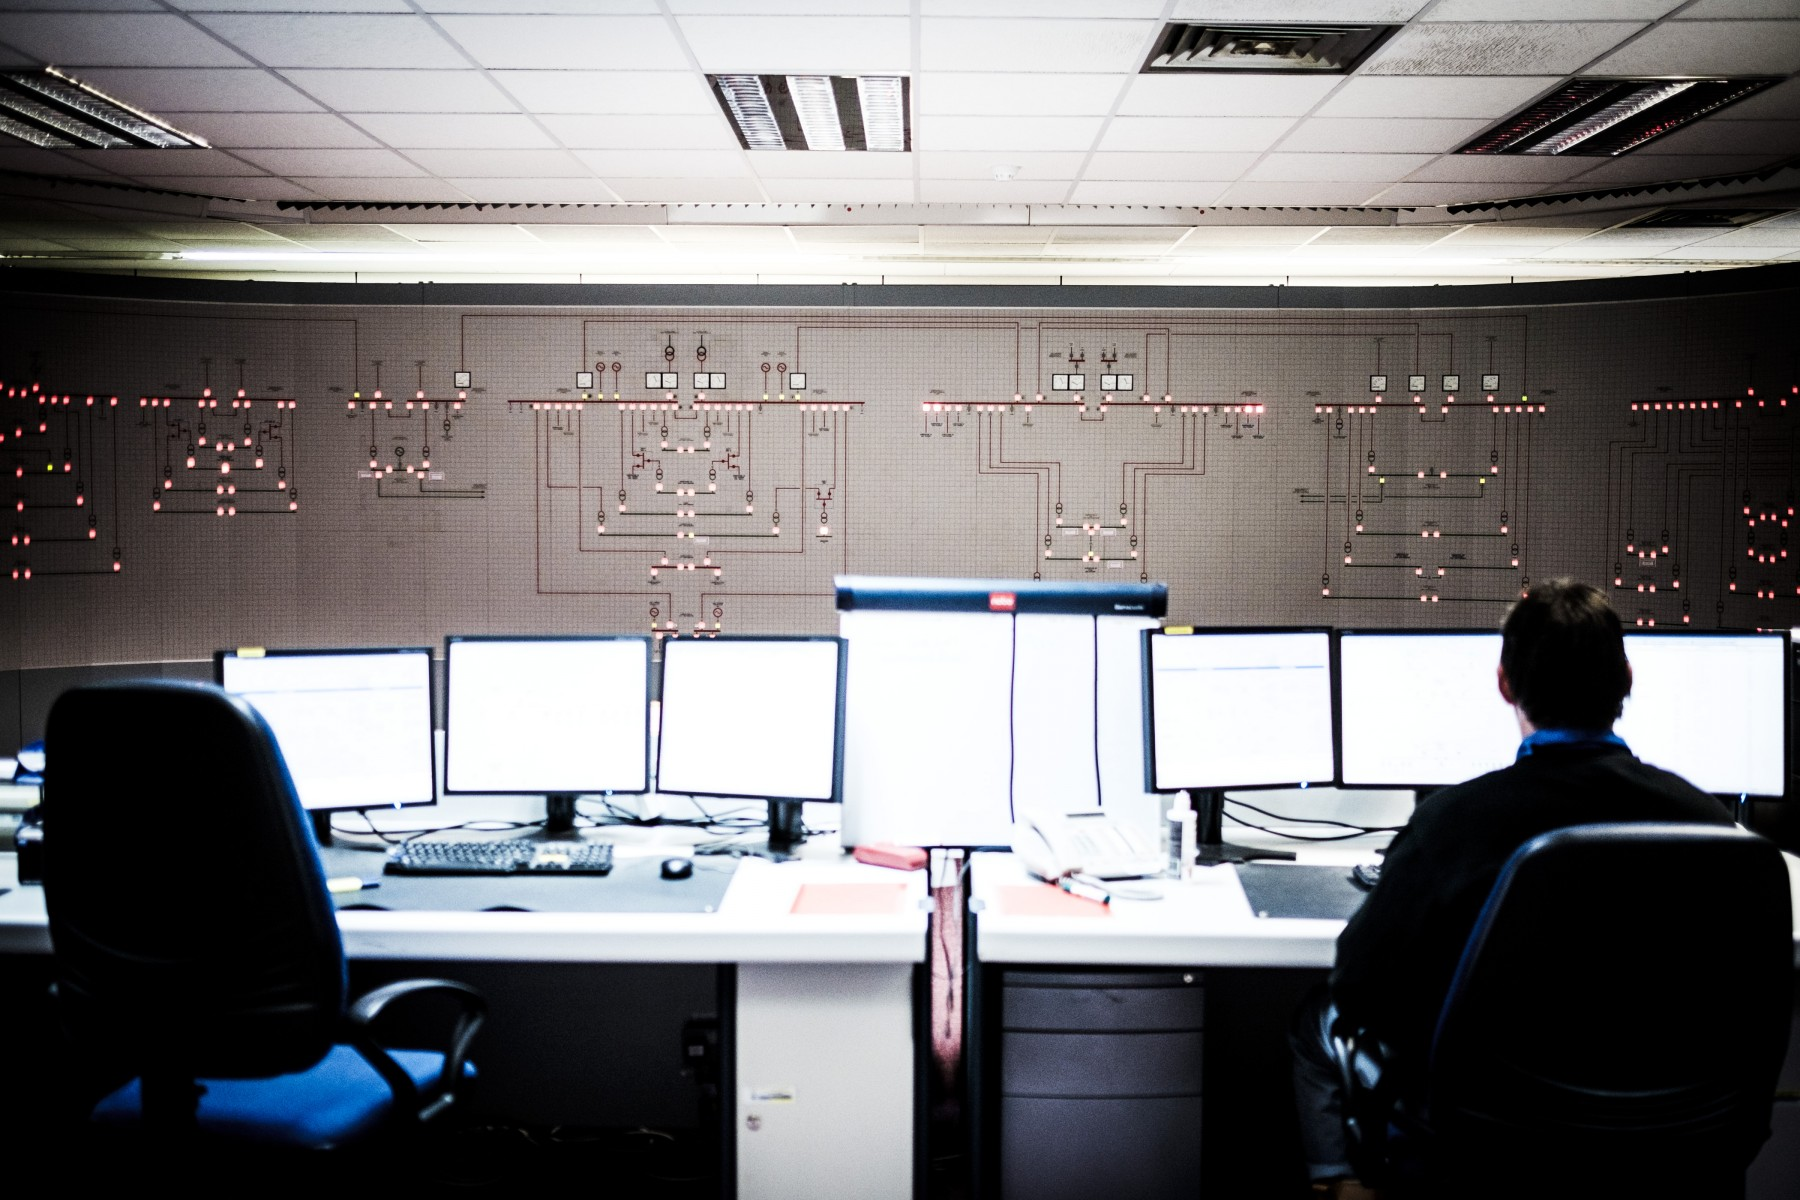 A control room at the Sellafield nuclear site in Cumbria